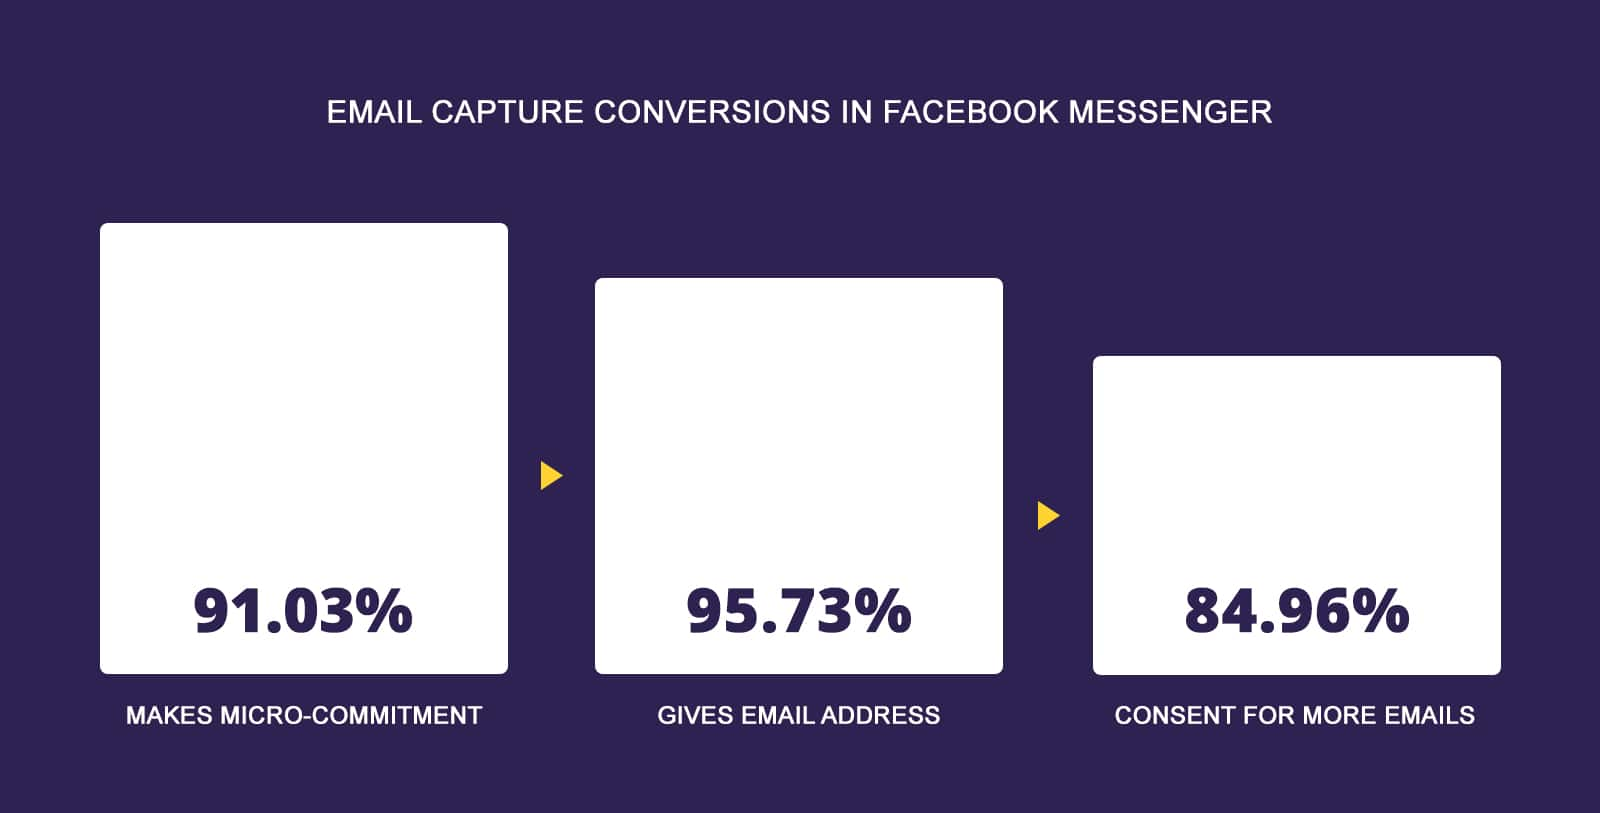 Email capture conversion in Facebook Messenger